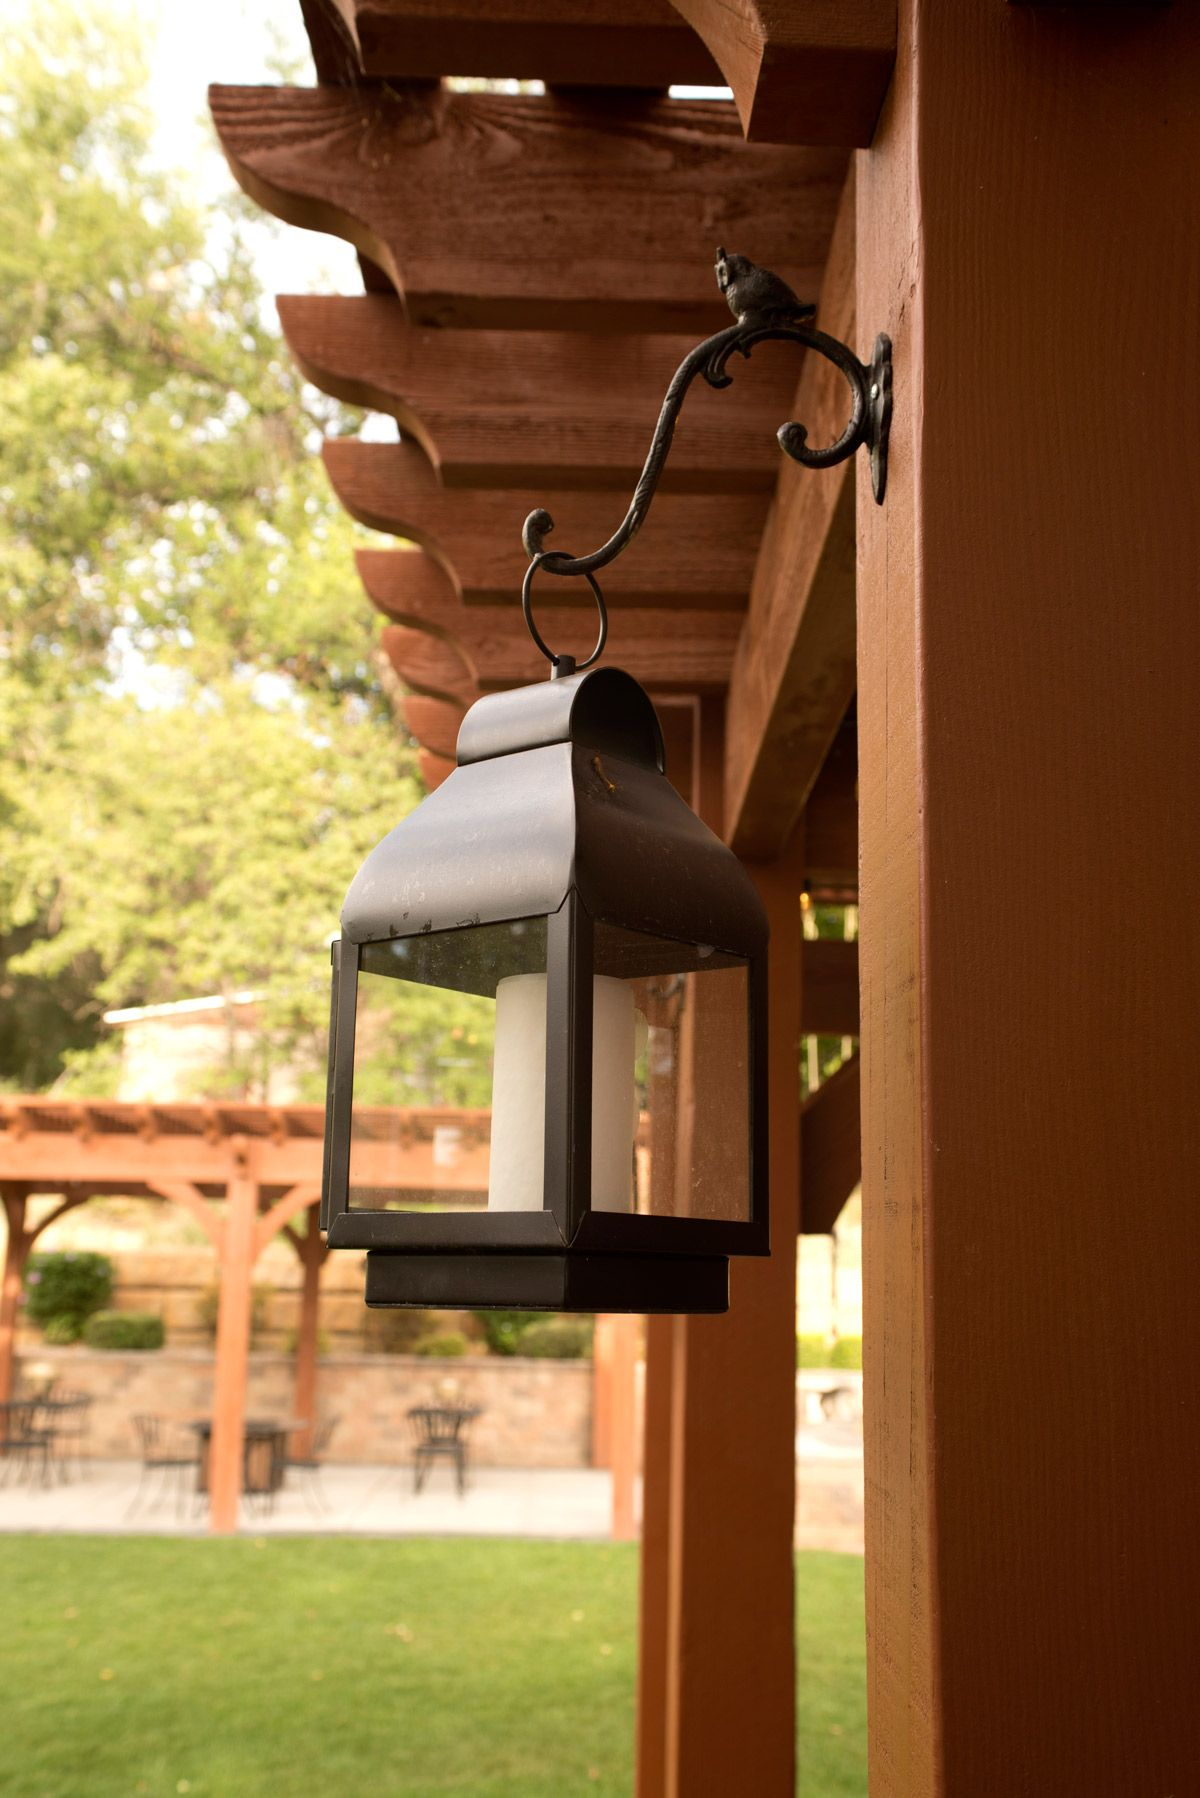 Pin pergola lighting on pinterest - Metal Candle Lanterns Offer Romantic Lighting At Night And Give A Nice Stark Contrast Against The